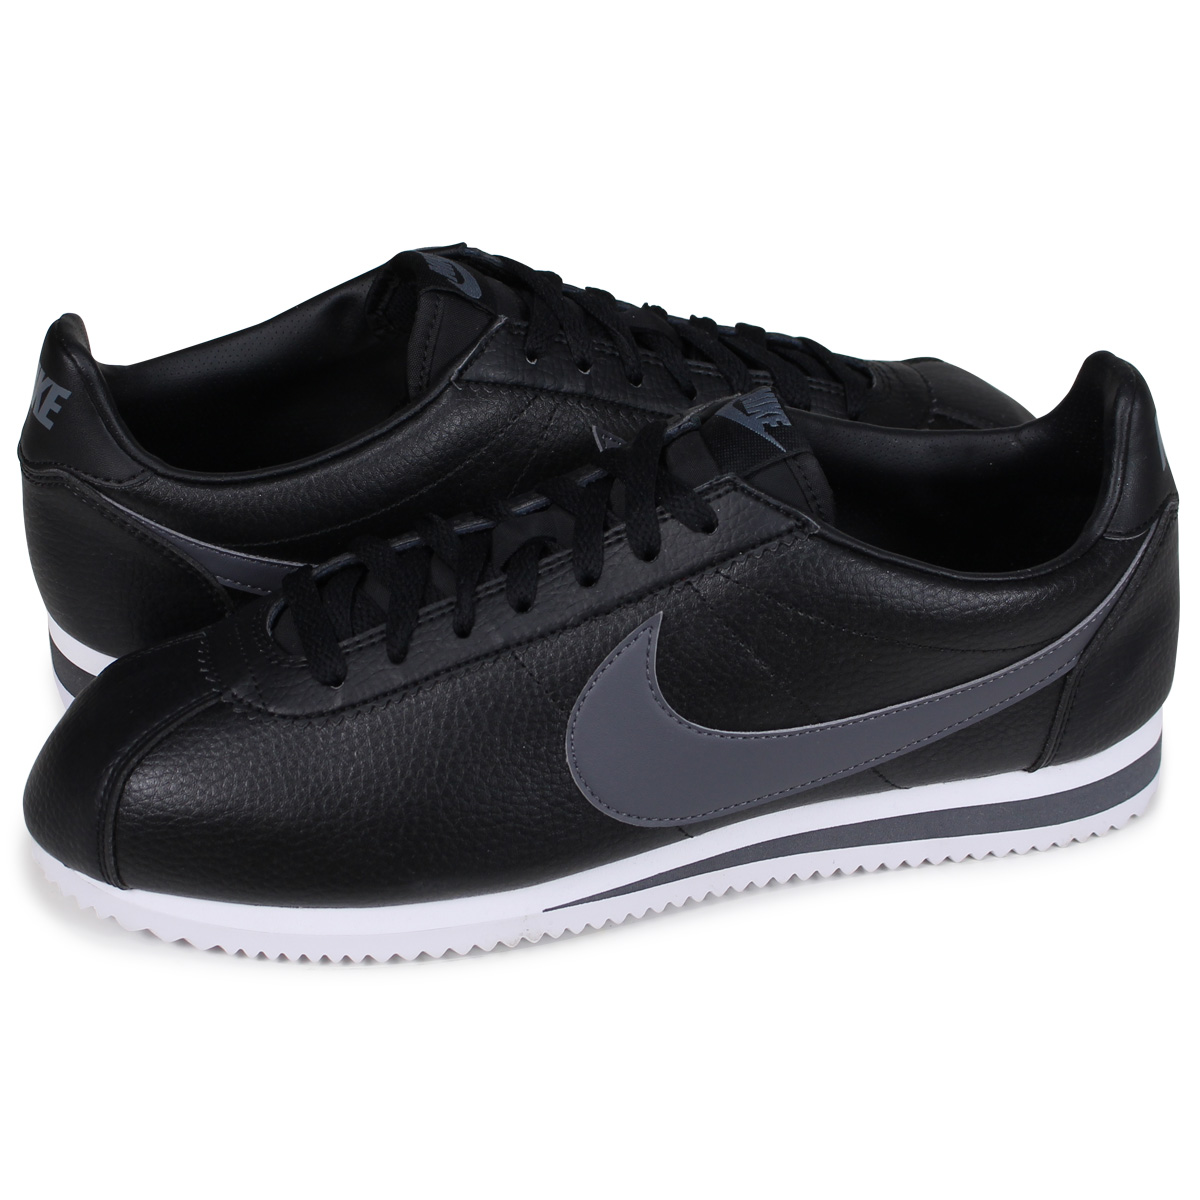 reputable site 6e803 a12a3 Nike NIKE コルテッツスニーカー CLASSIC CORTEZ LEATHER 749,571-011 men's black